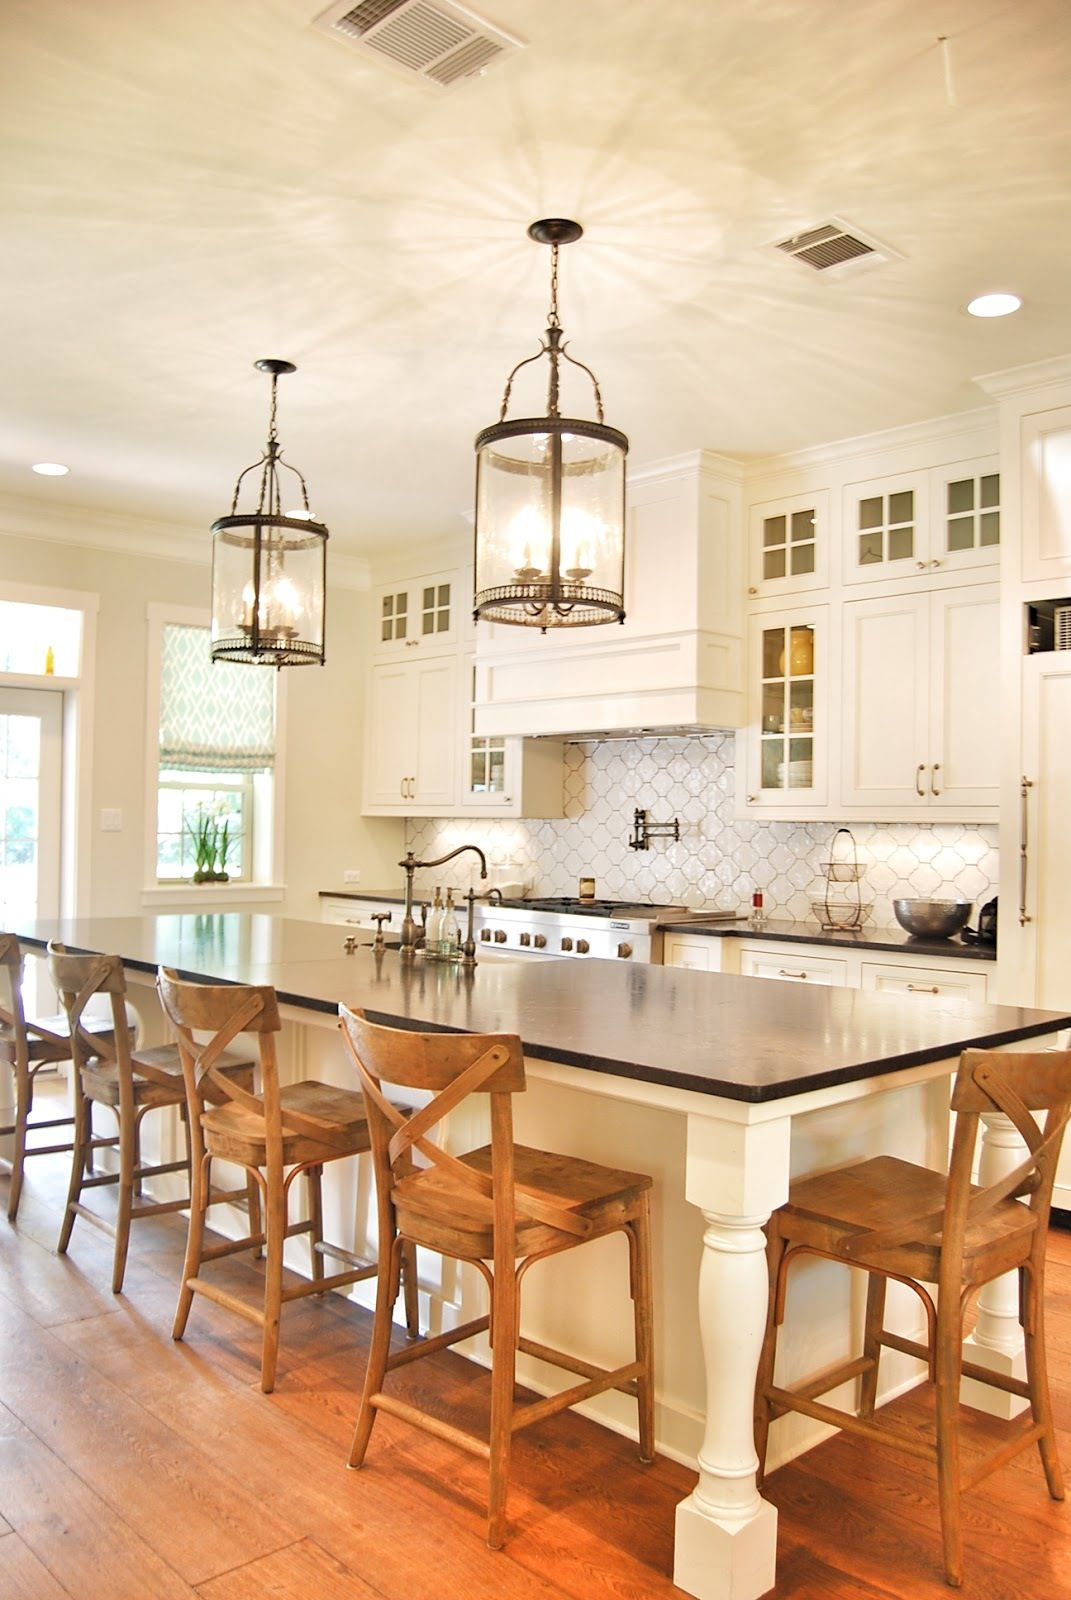 Dream kitchen so airy and